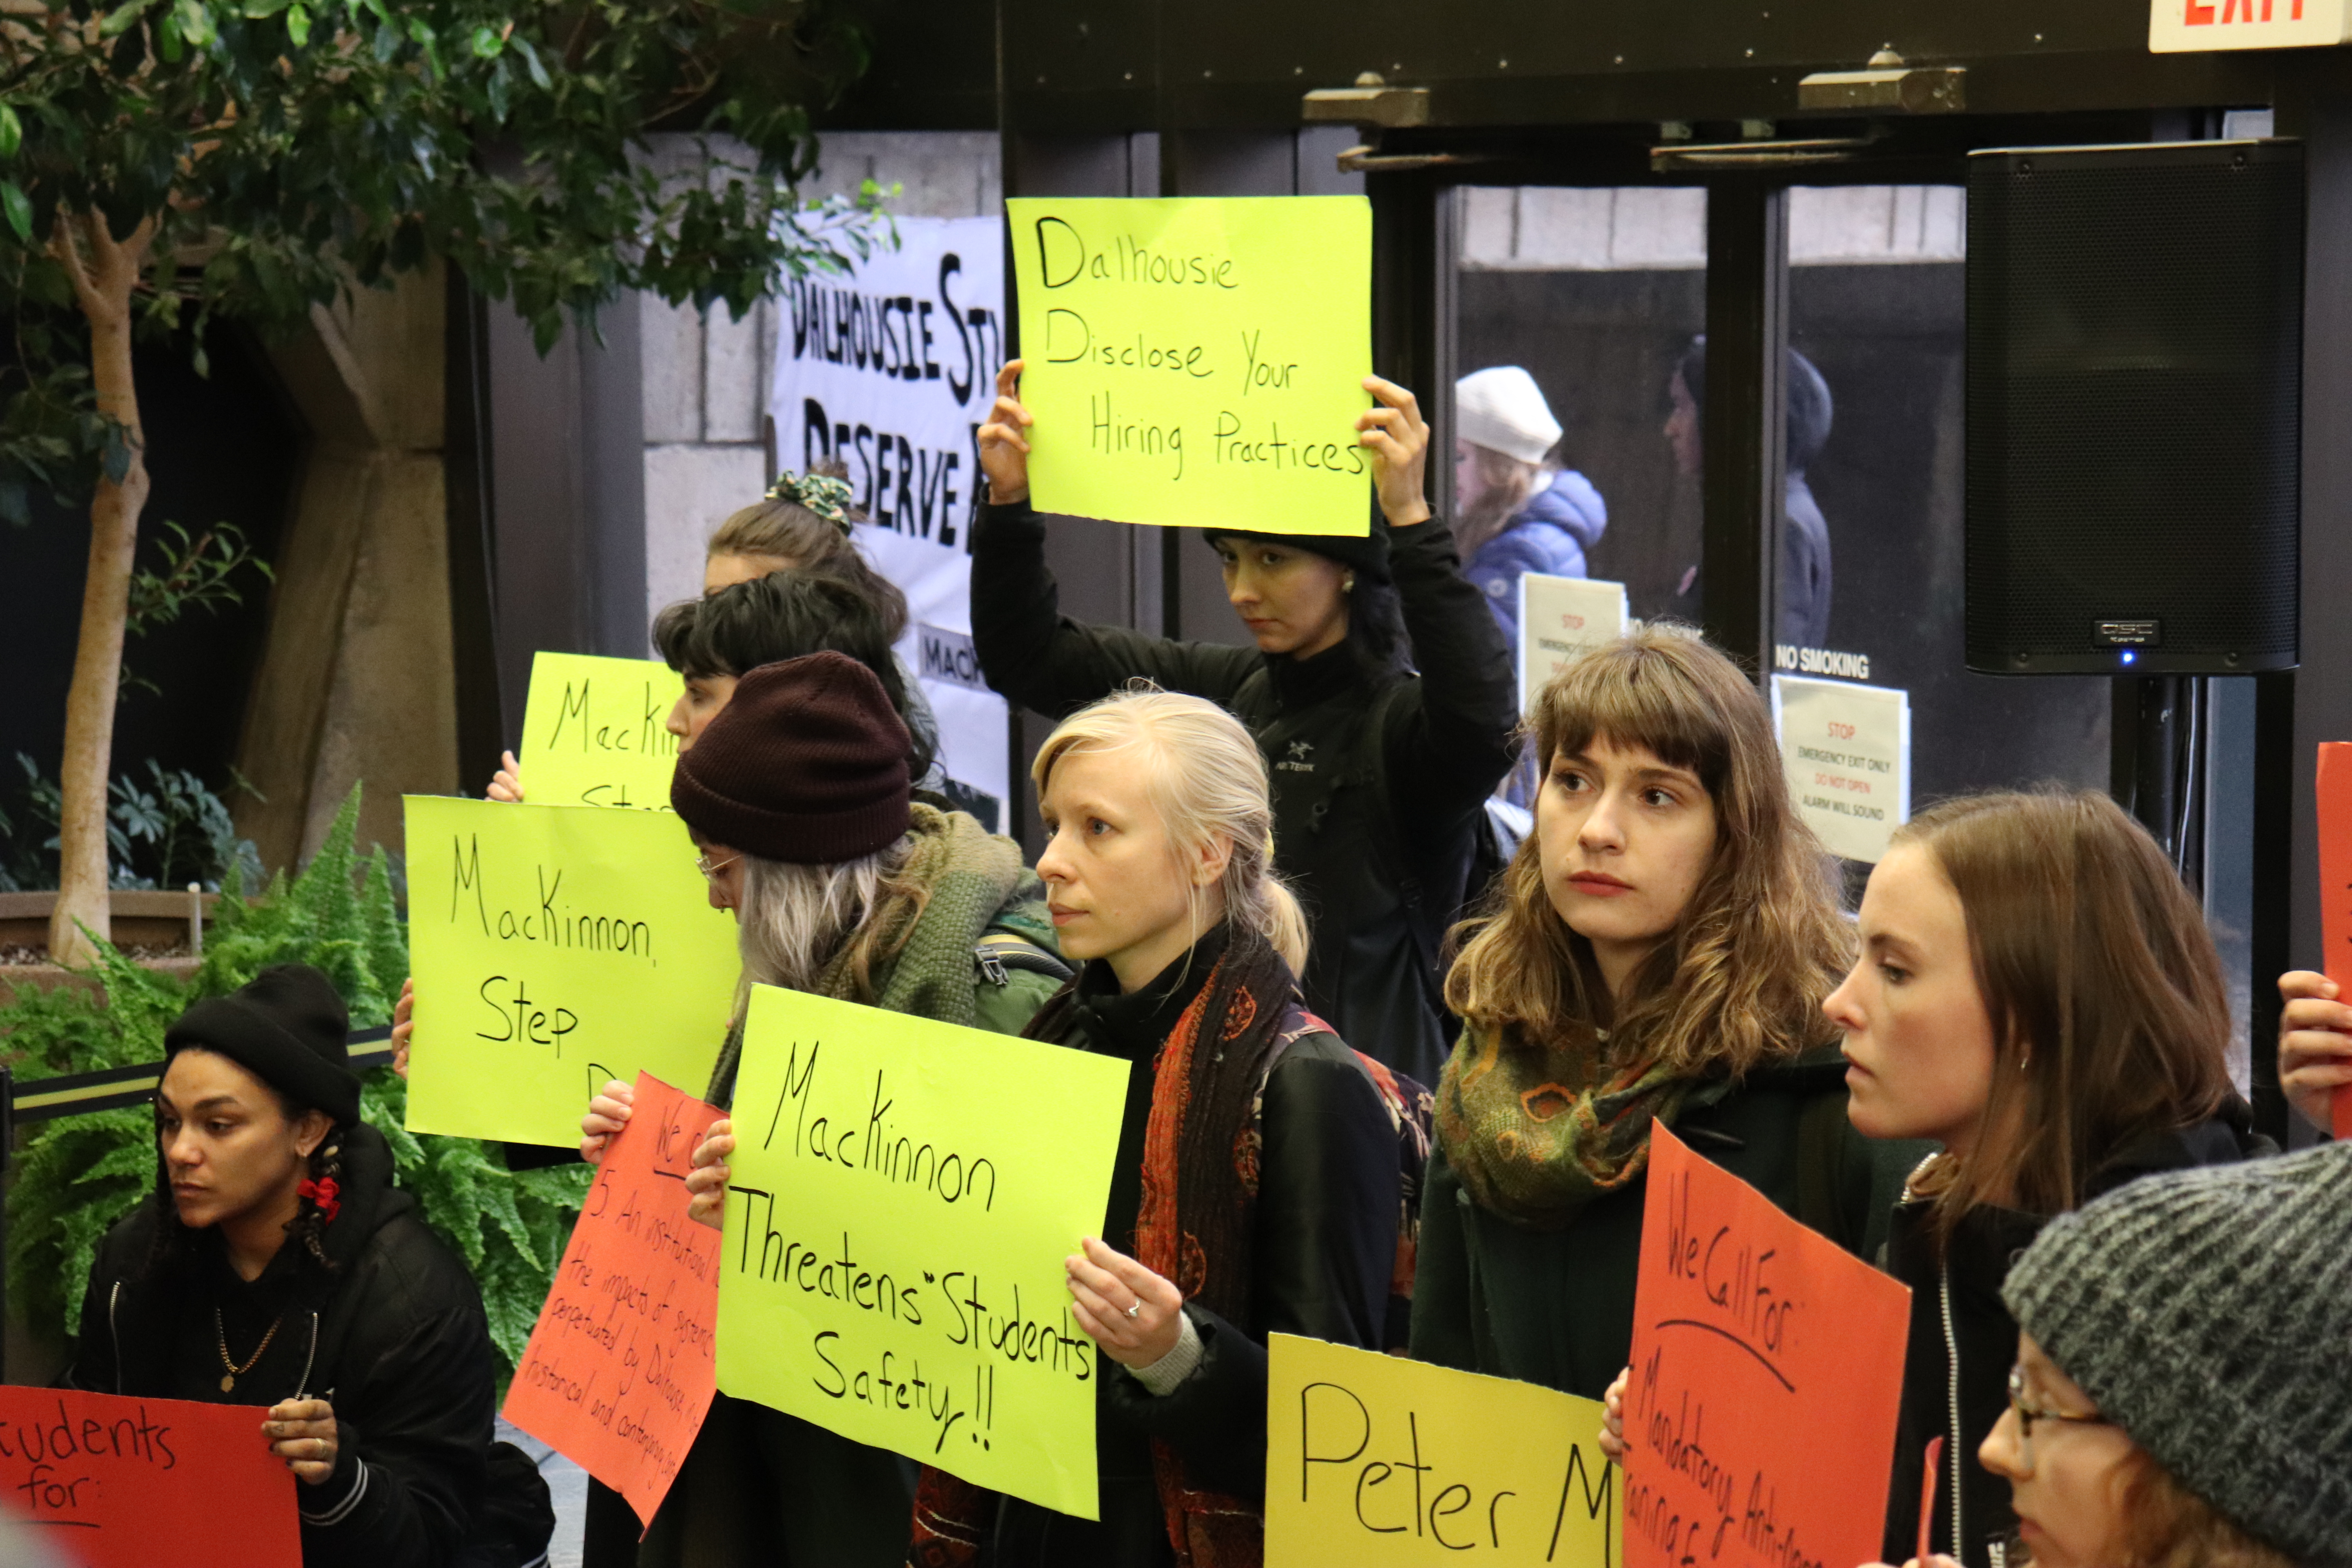 Dalhousie students stand in the Arts Centre holding signs protesting Peter MacKinnon.